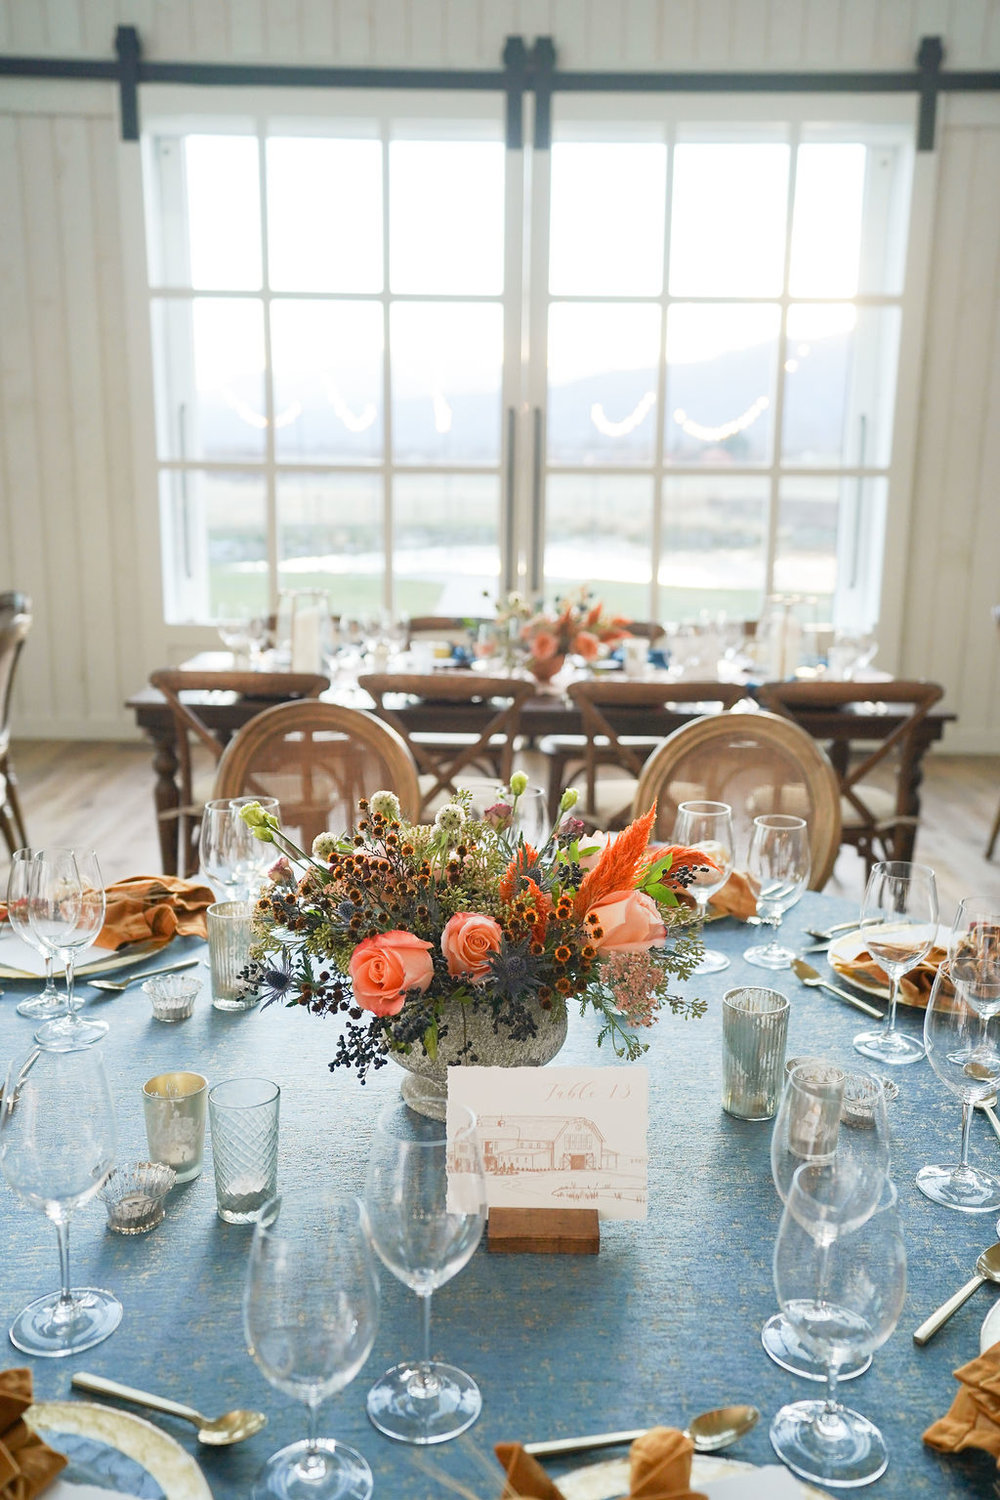 River Bottoms Ranch | Midway, Utah | Utah Wedding and Event Venue | Golden Yellow and Dark Teal Decor | Michelle Leo Events | Utah Event Planner and Designer | Pepper Nix Photography